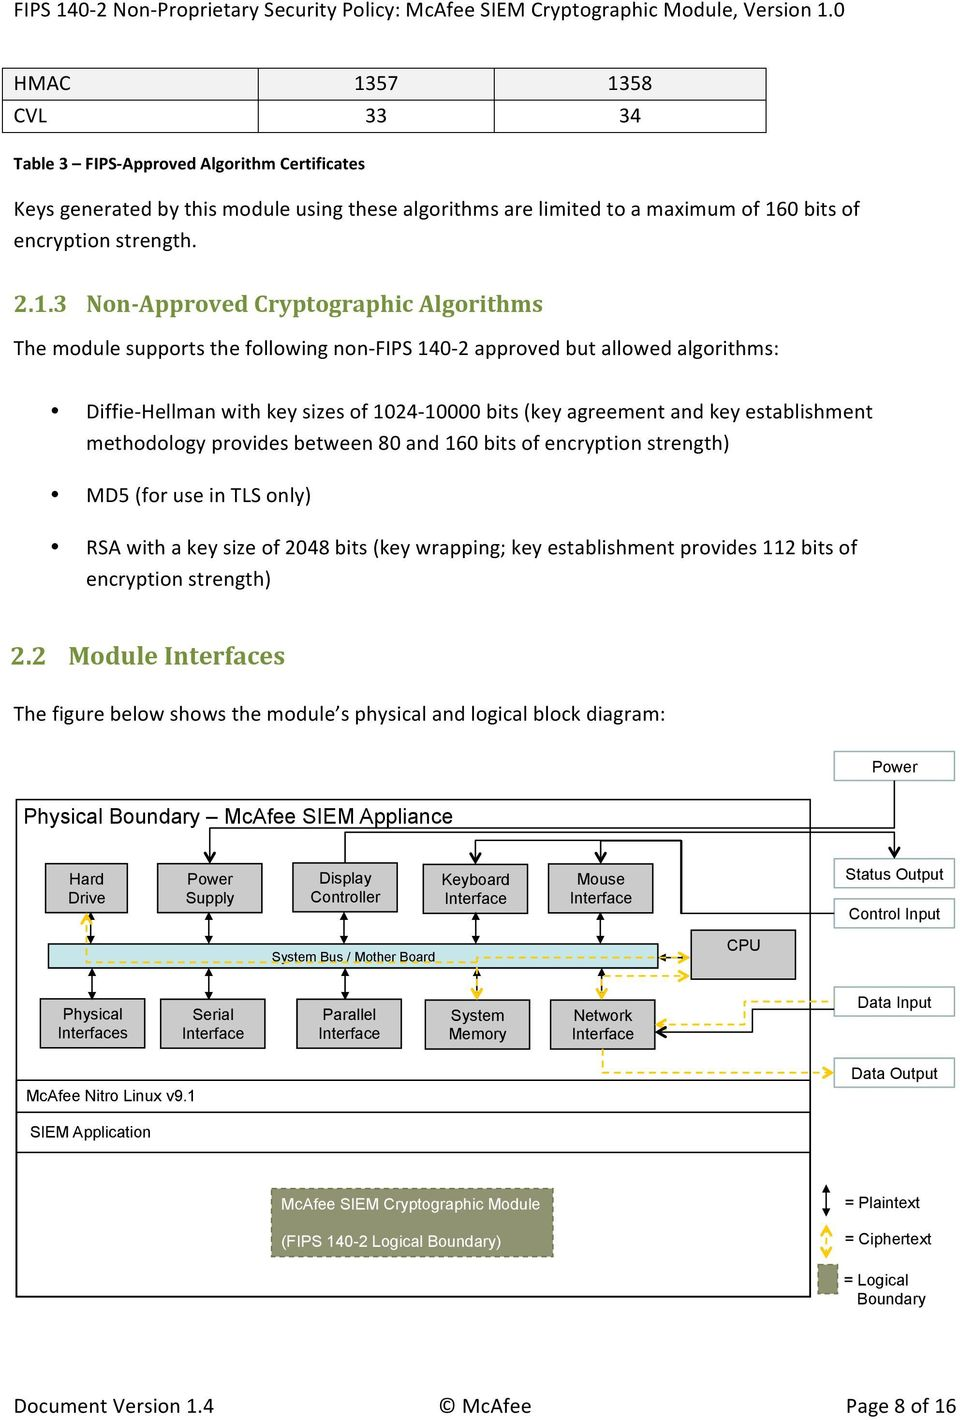 establishment methodology provides between 80 and 60 bits of encryption strength) MD5 (for use in TLS only) RSA with a key size of 2048 bits (key wrapping; key establishment provides 2 bits of